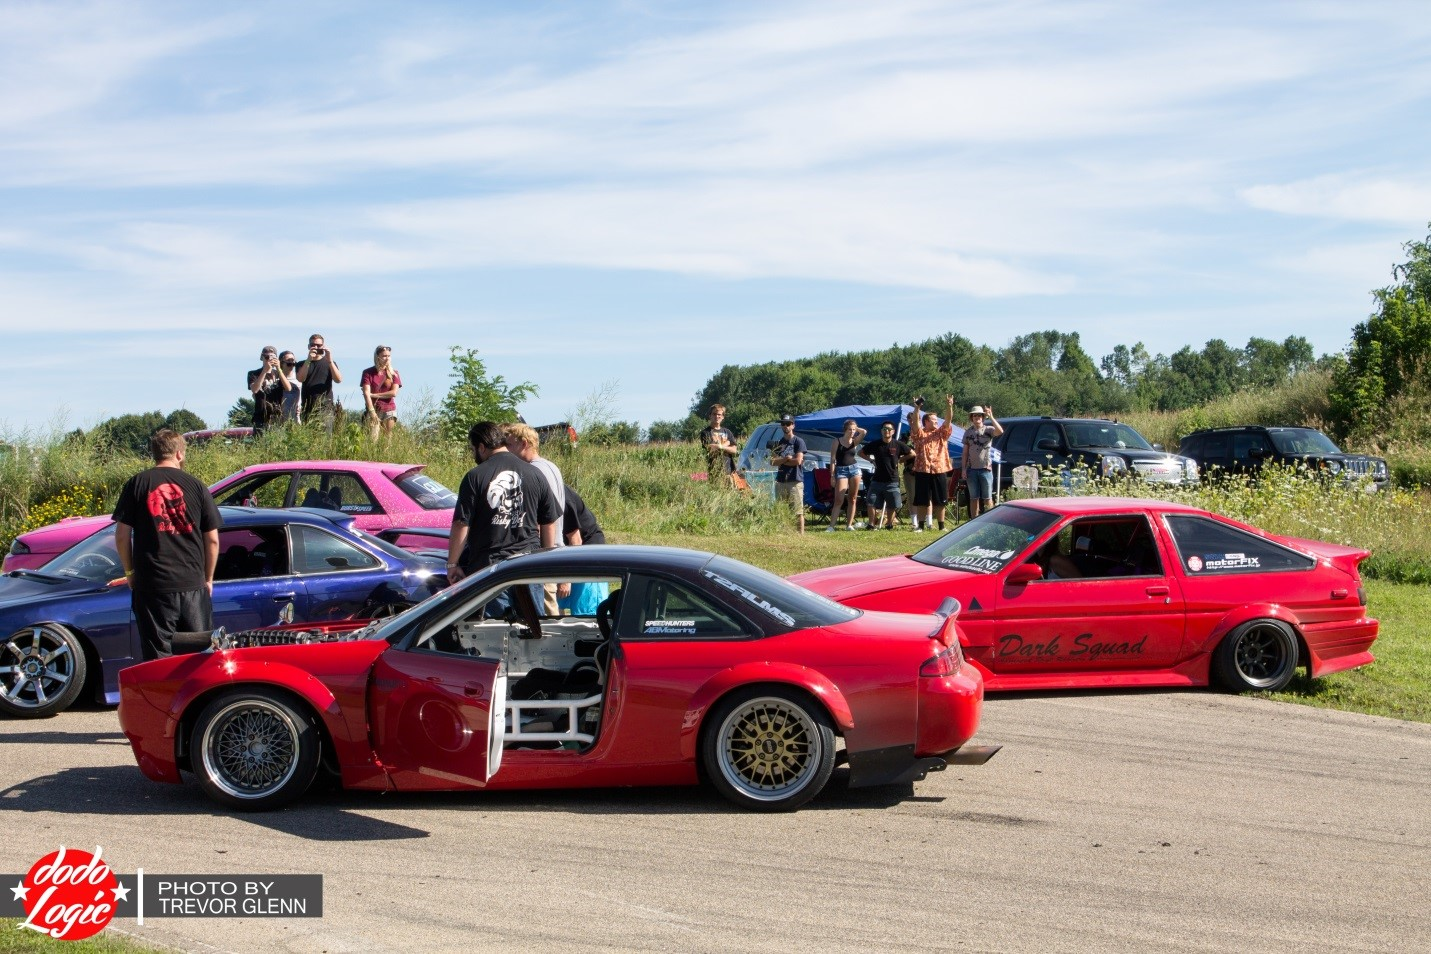 In the midst of all the fun, there was a little incident involving a couple of the cars…